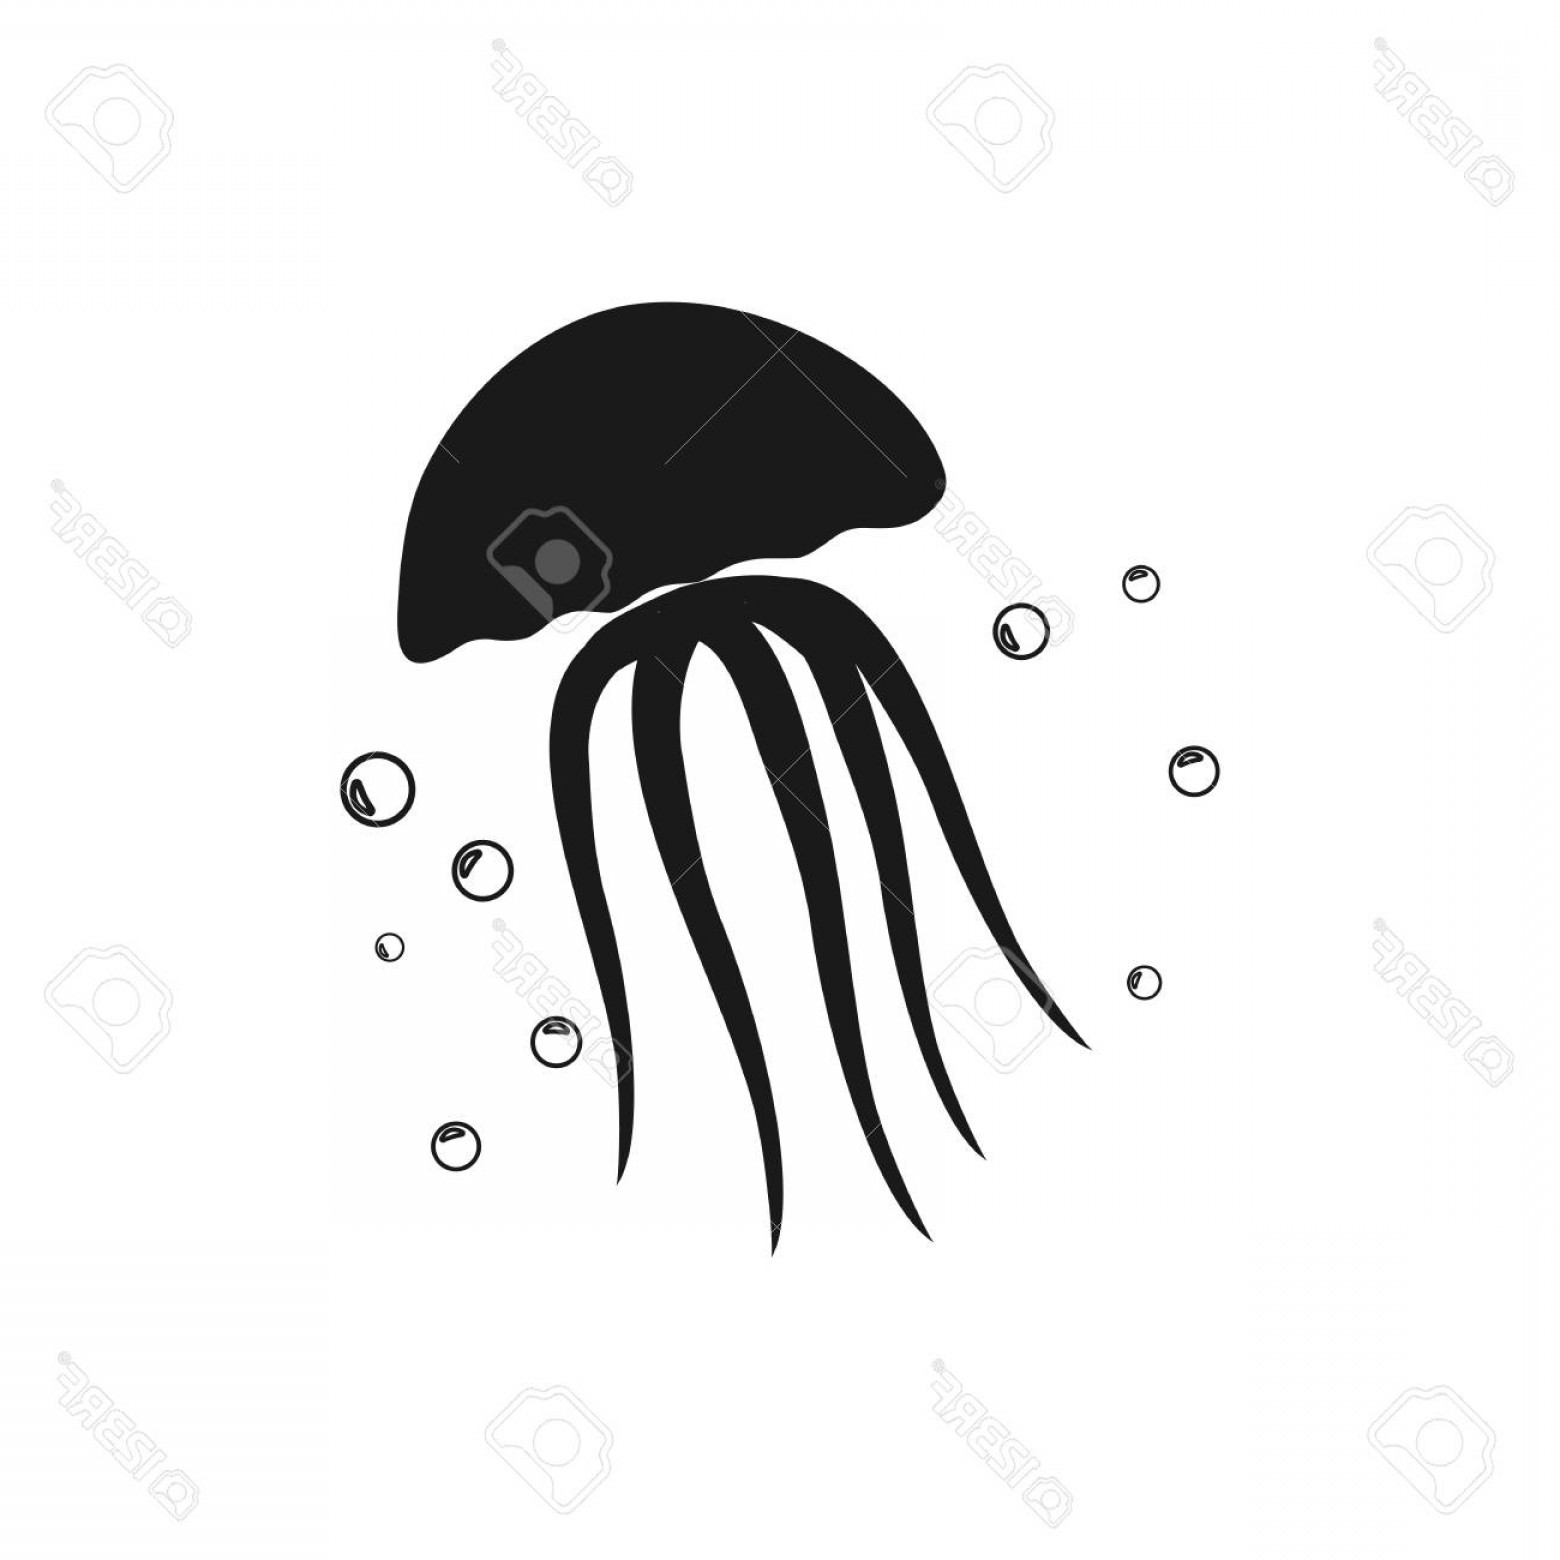 Jelly Fish Graphic Vector: Photostock Vector Jellyfish Icon Vector Flat Icon Jellyfish Flat Vector Illustration For Web And Mobile Vector Jellyfi